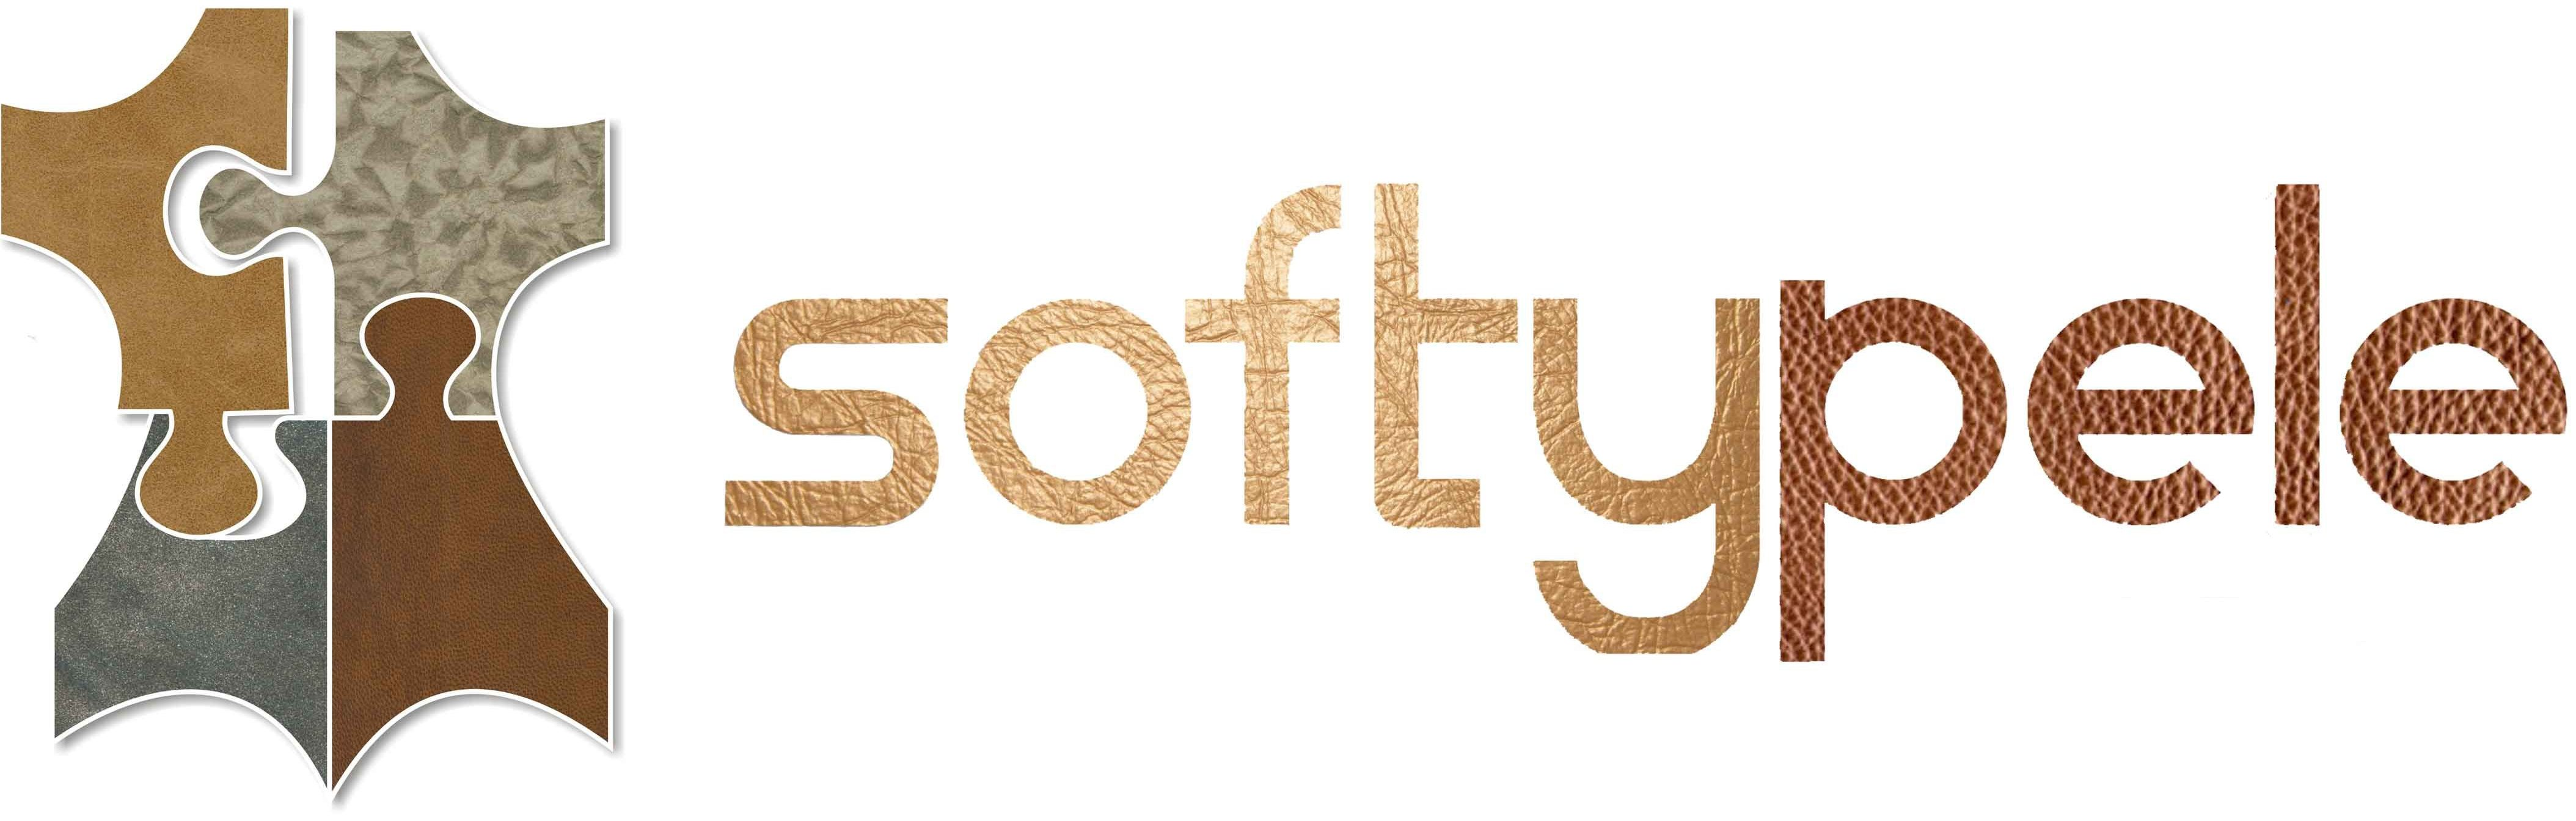 Softypele